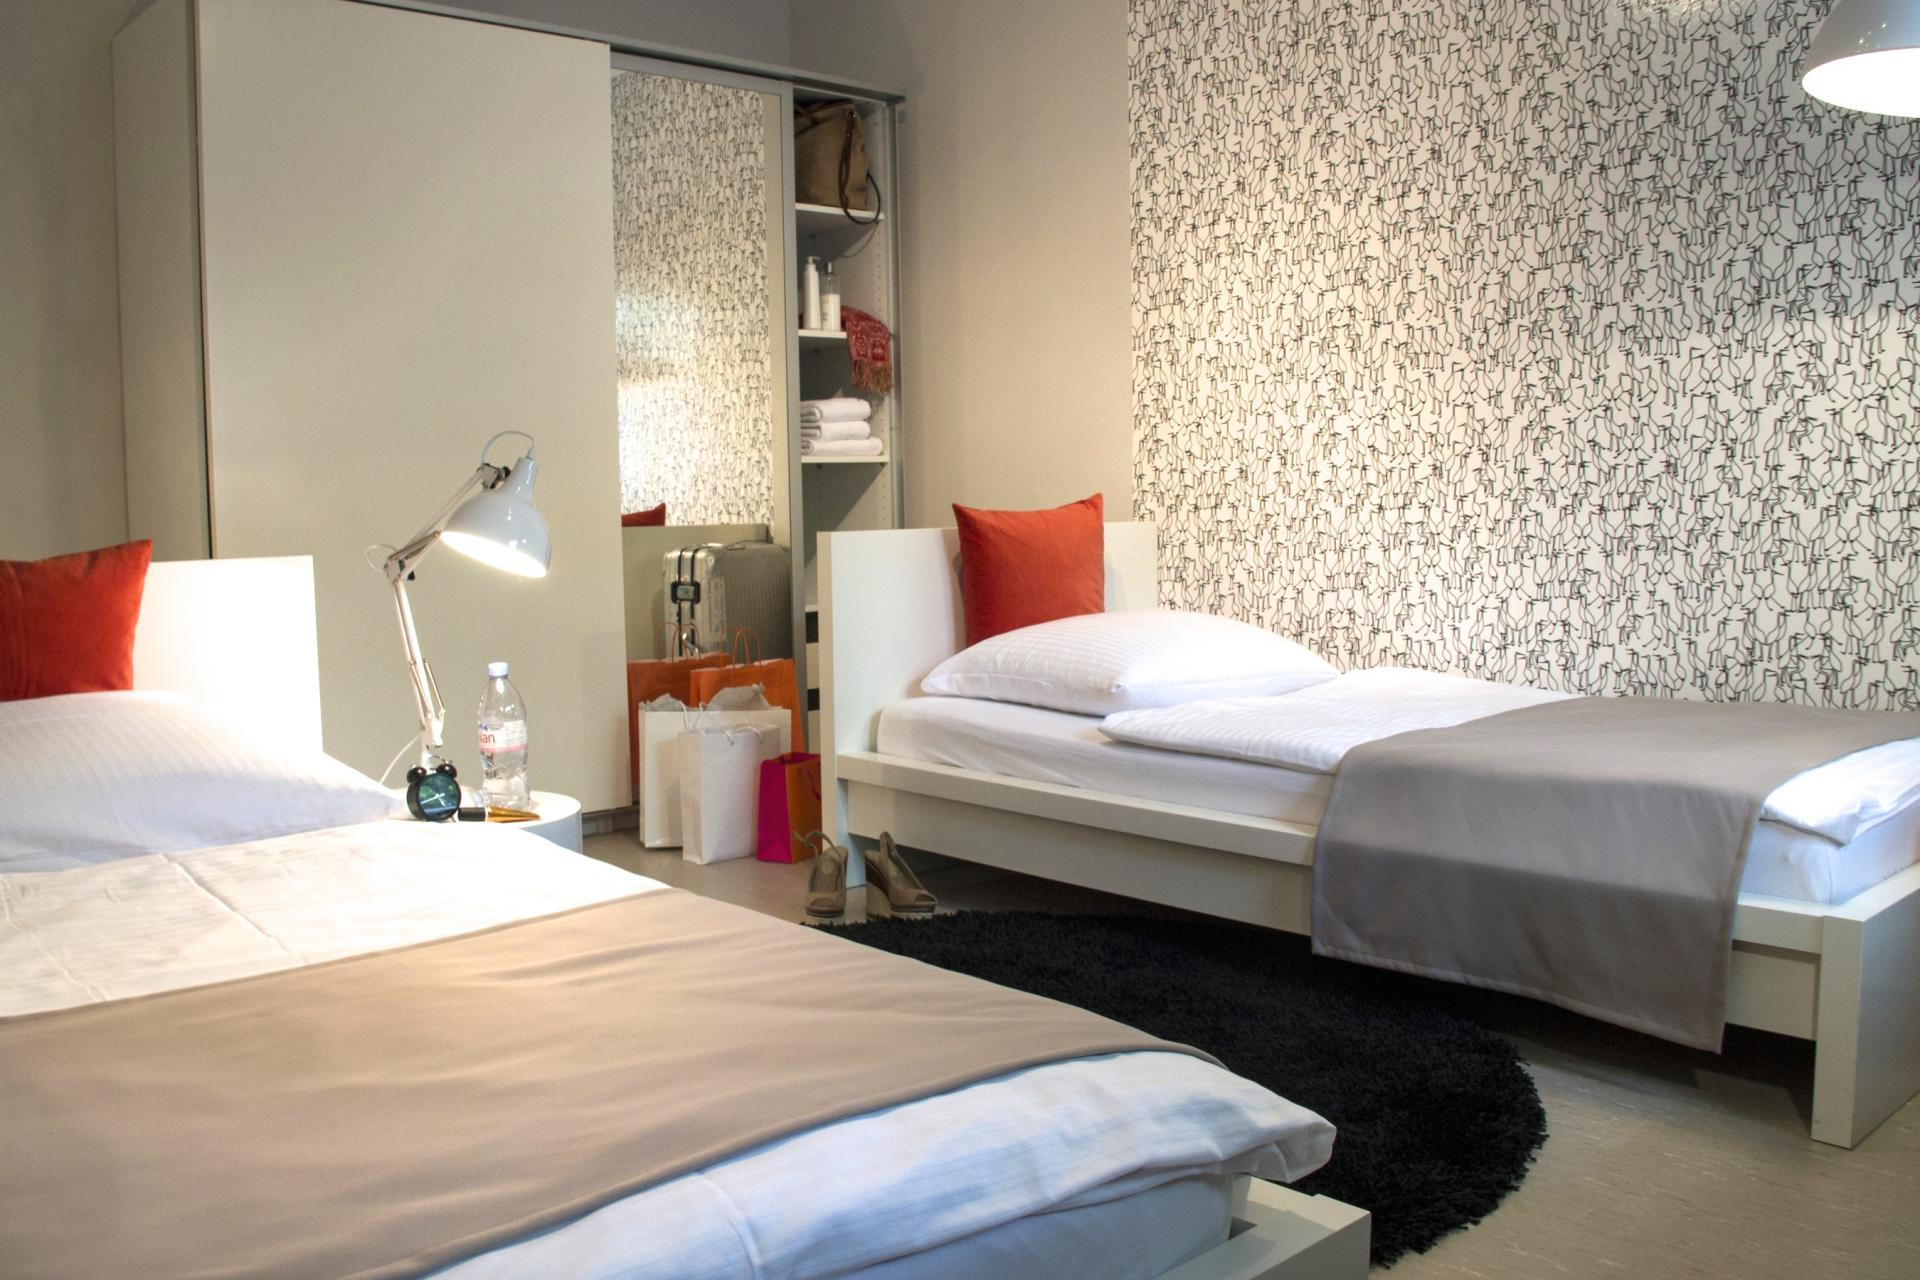 Boardinghouse Serviced Apartments - Munich - SilverDoor